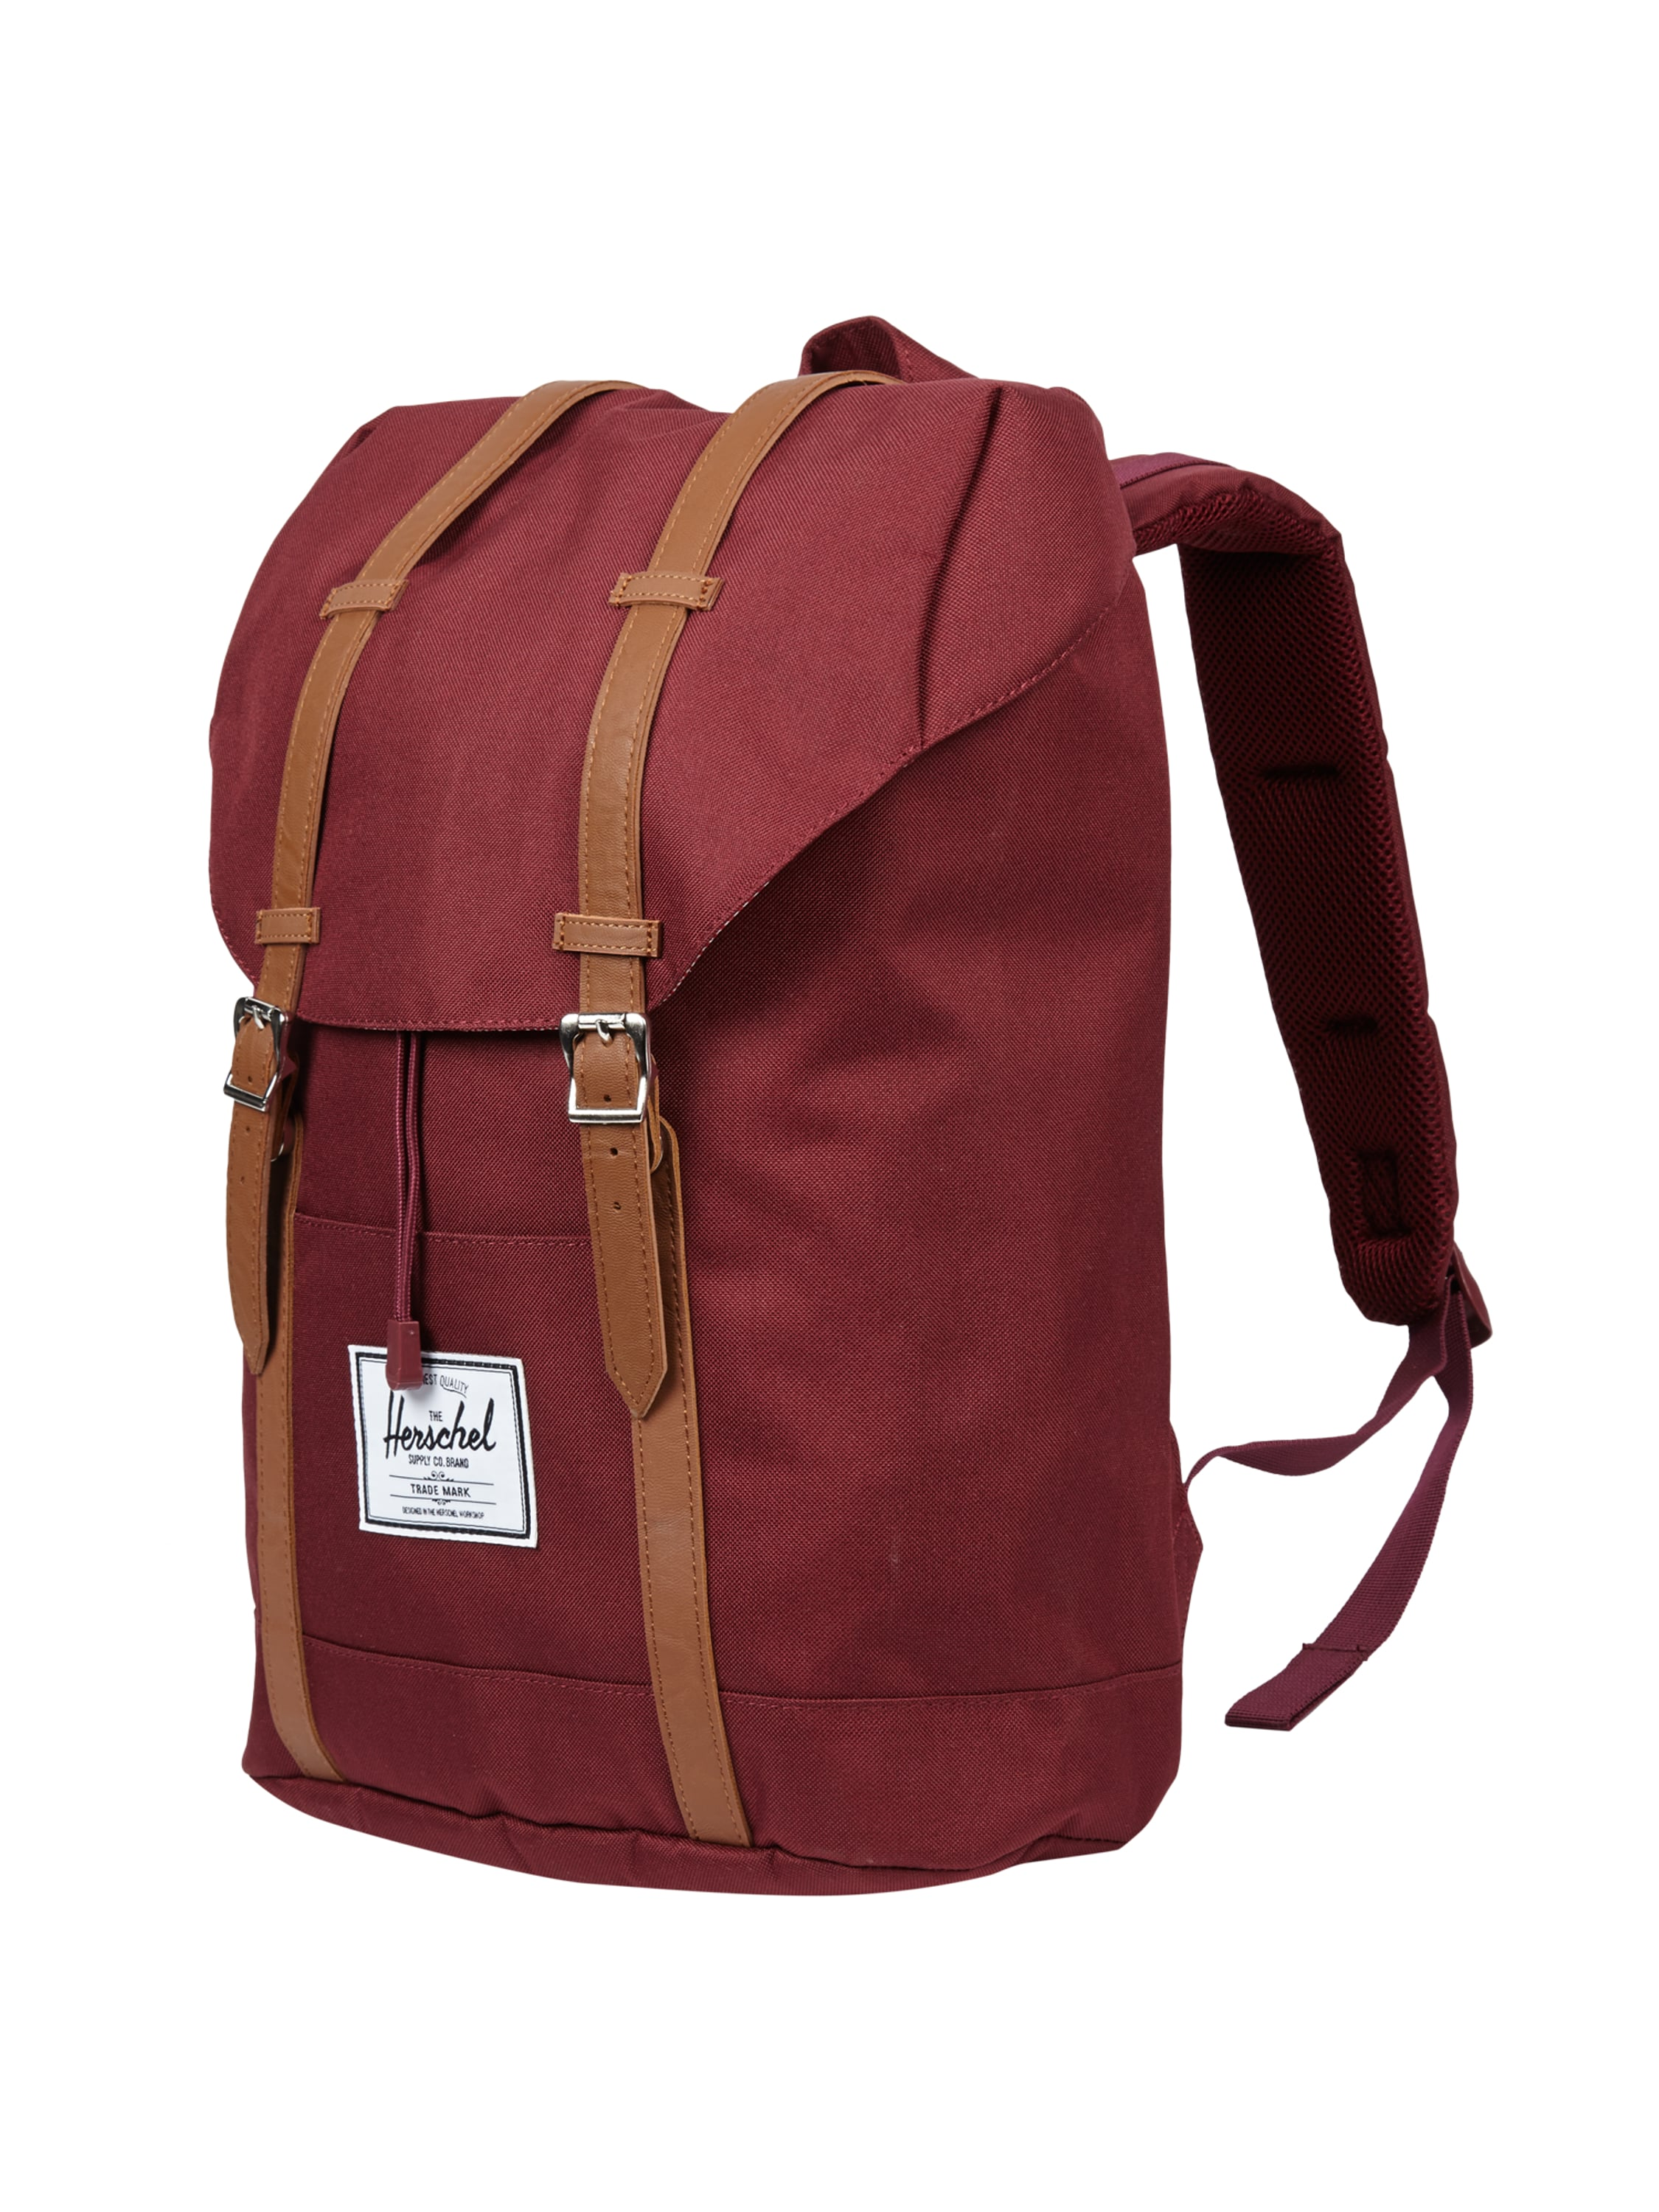 herschel rucksack mit gepolstertem r cken in rot online kaufen 9475178 p c online shop. Black Bedroom Furniture Sets. Home Design Ideas